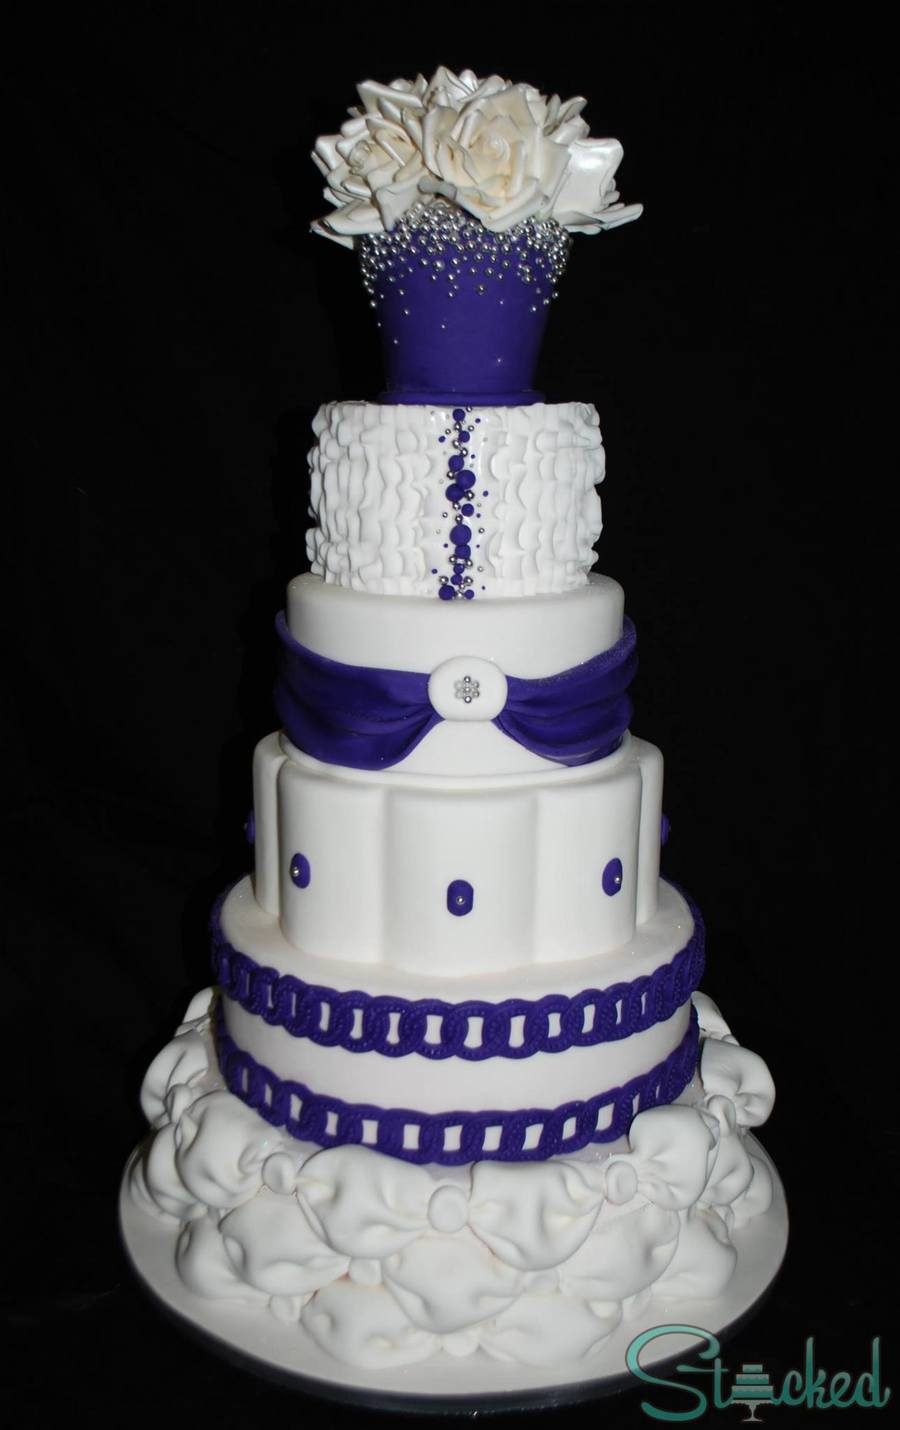 A Grandiose 90th Birthday Cake I Made For My Grandmother White And